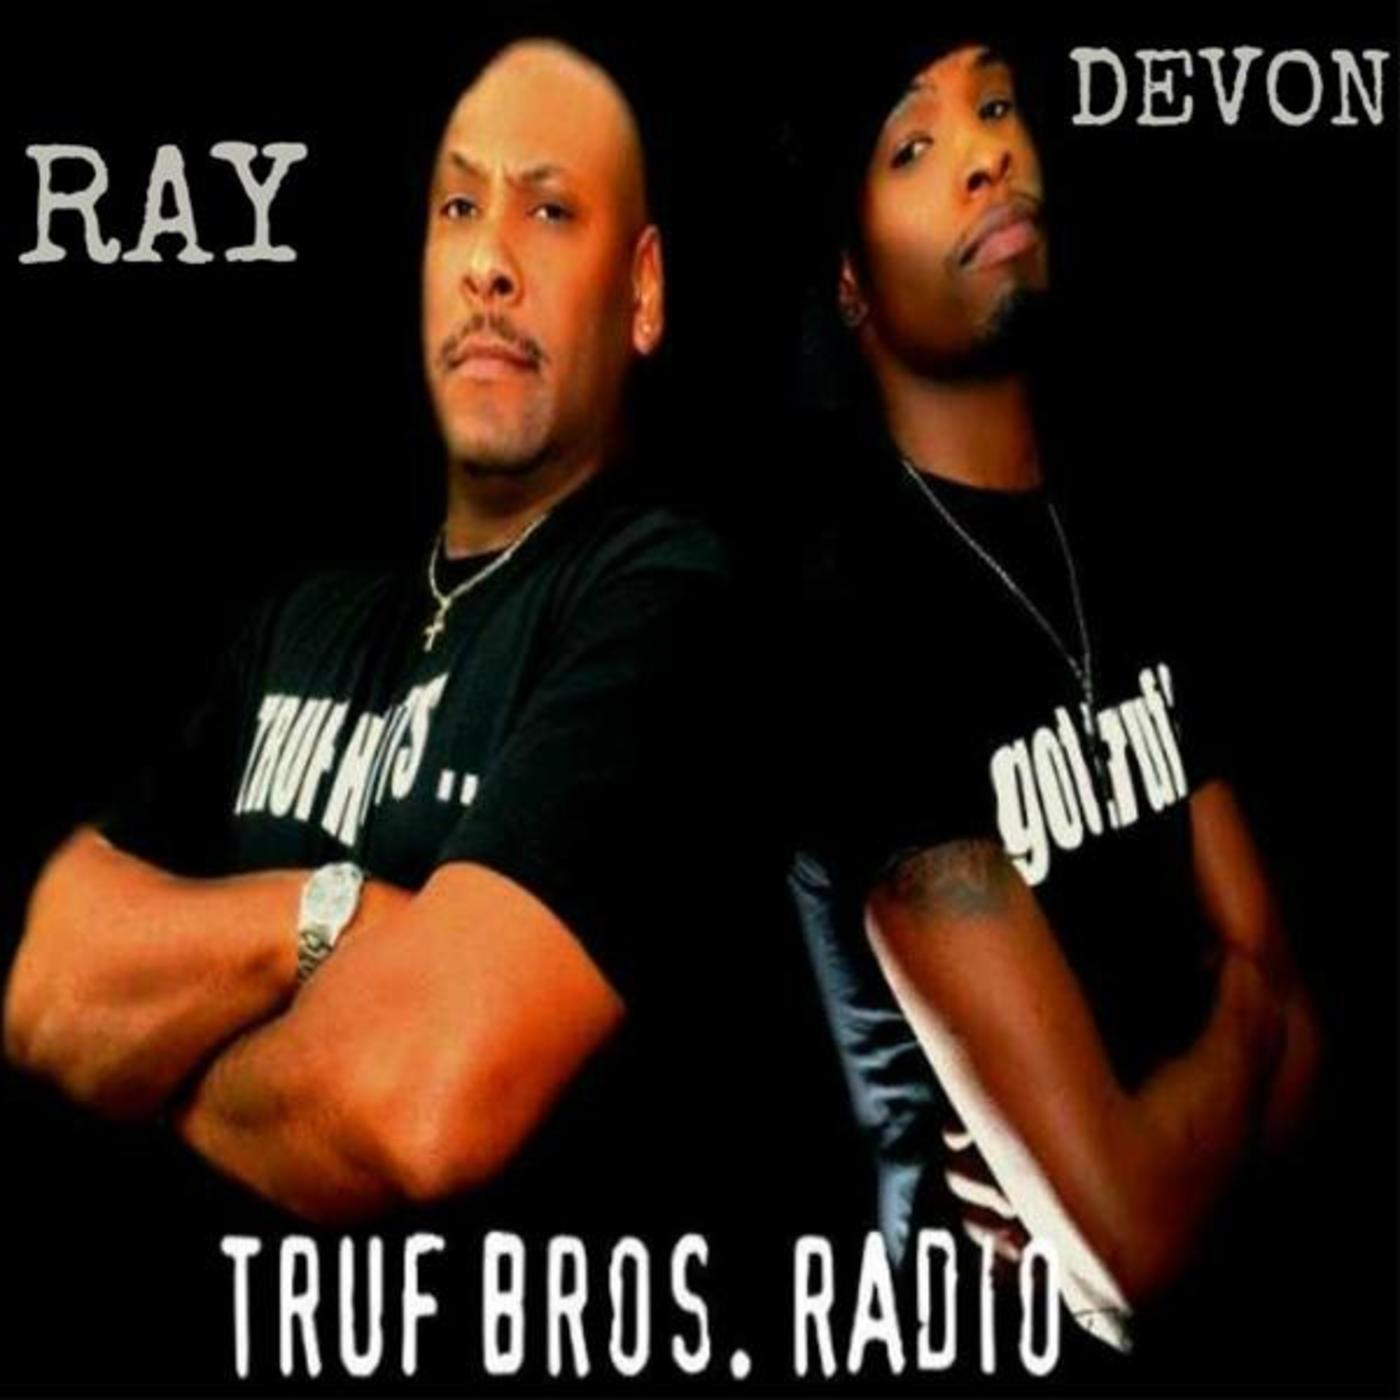 Truf Bros. Radio